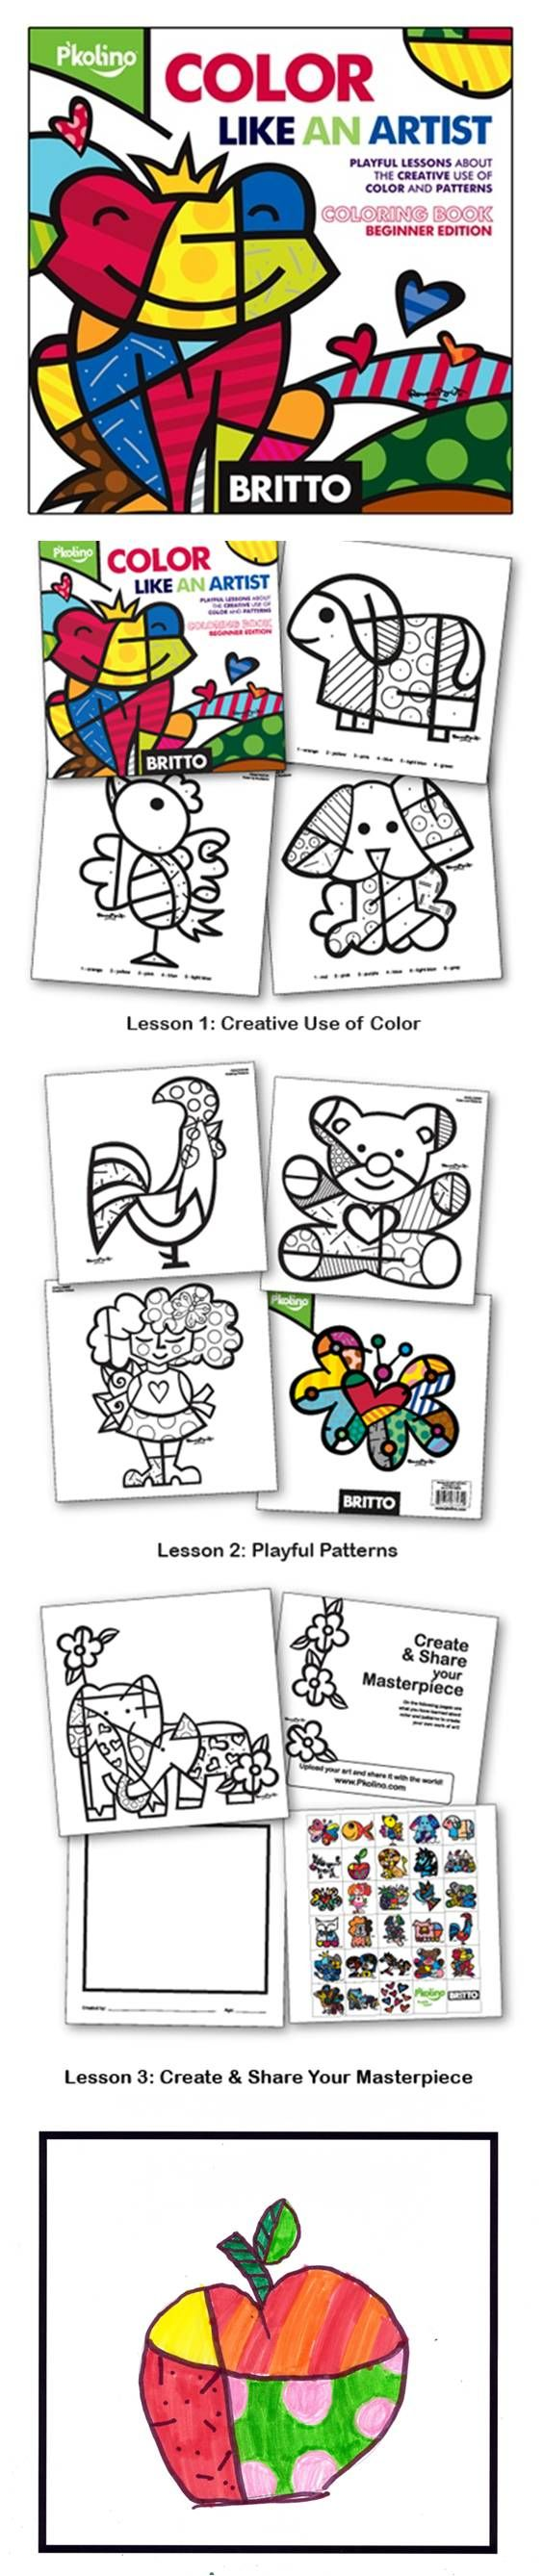 This playful coloring book teaches children about colors & patterns through the vibrant art & instruction of pop artist Romero Britto! Includes 28 full colors stickers! Made in the USA! $9.99 www.pkolino.com #pkolino #britto #madeinamerica